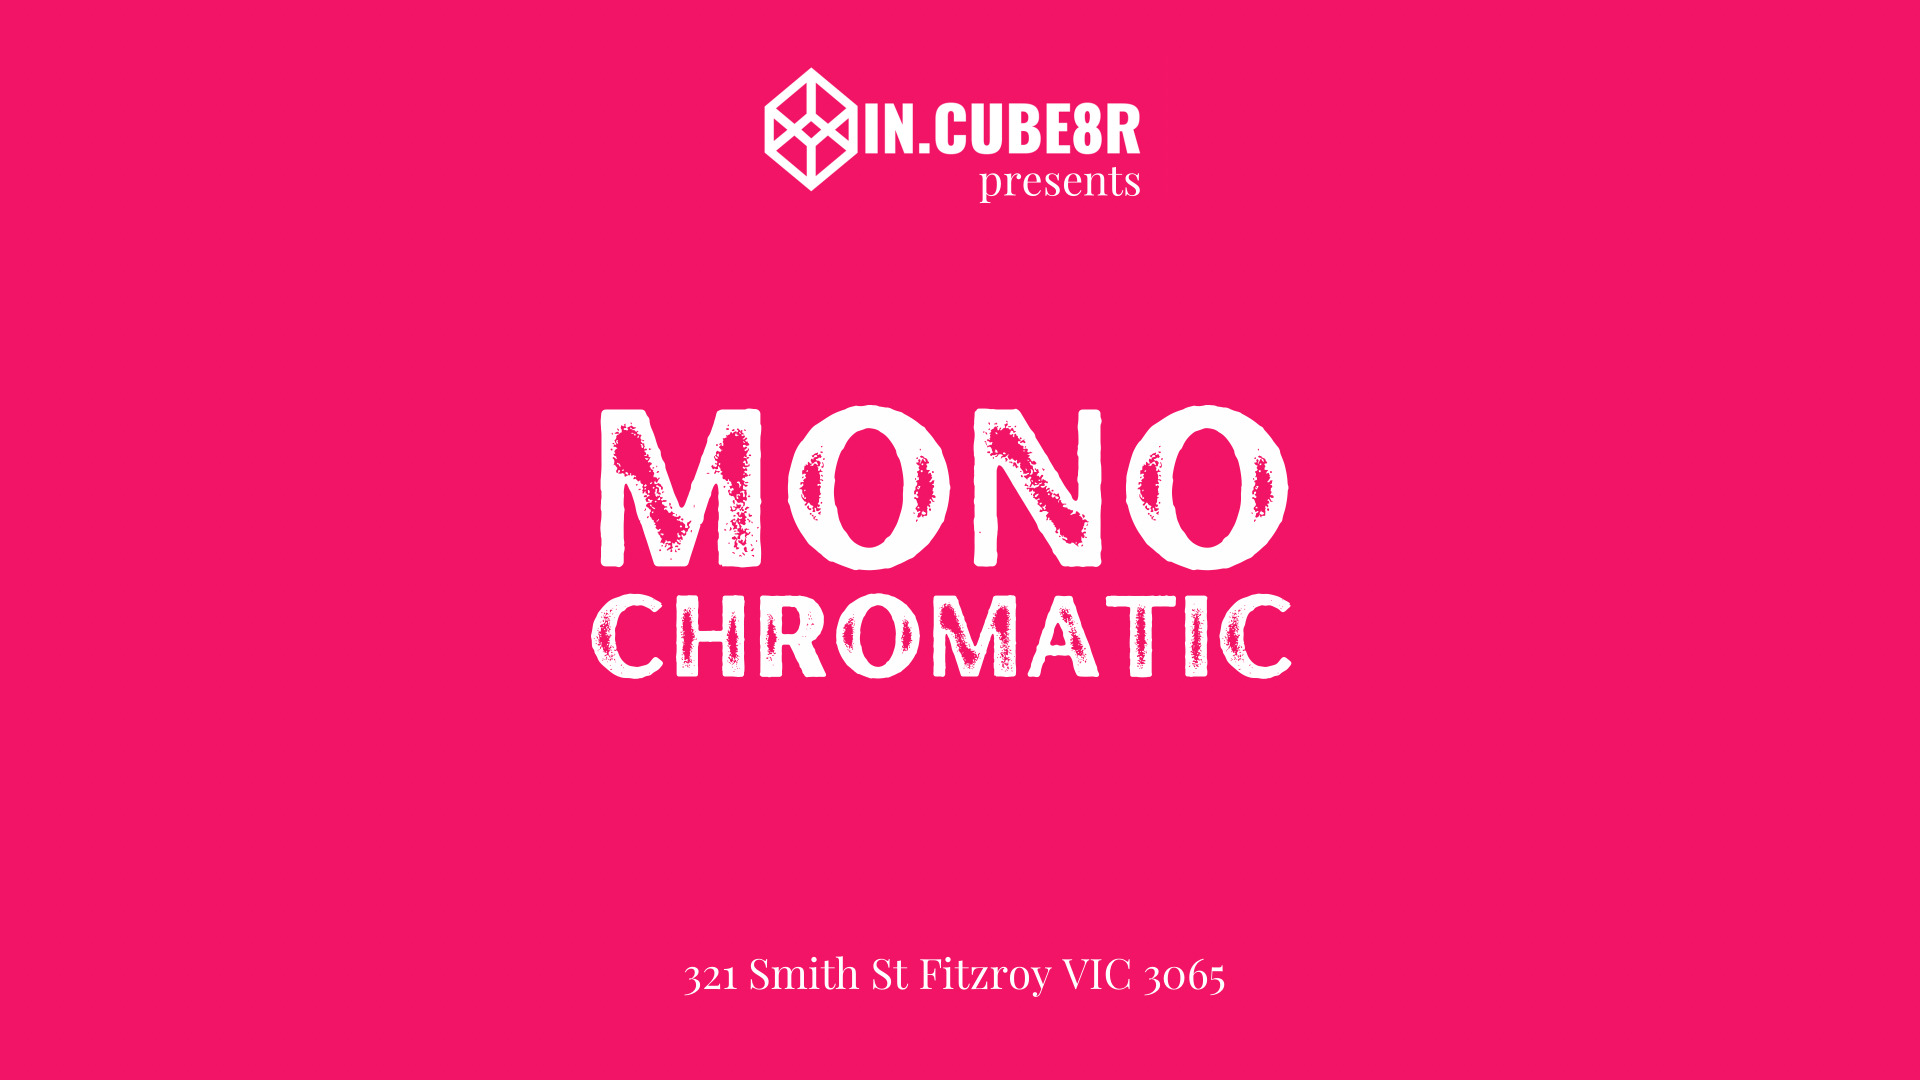 monochromatic-call-for-artists ellemay.michael 073566